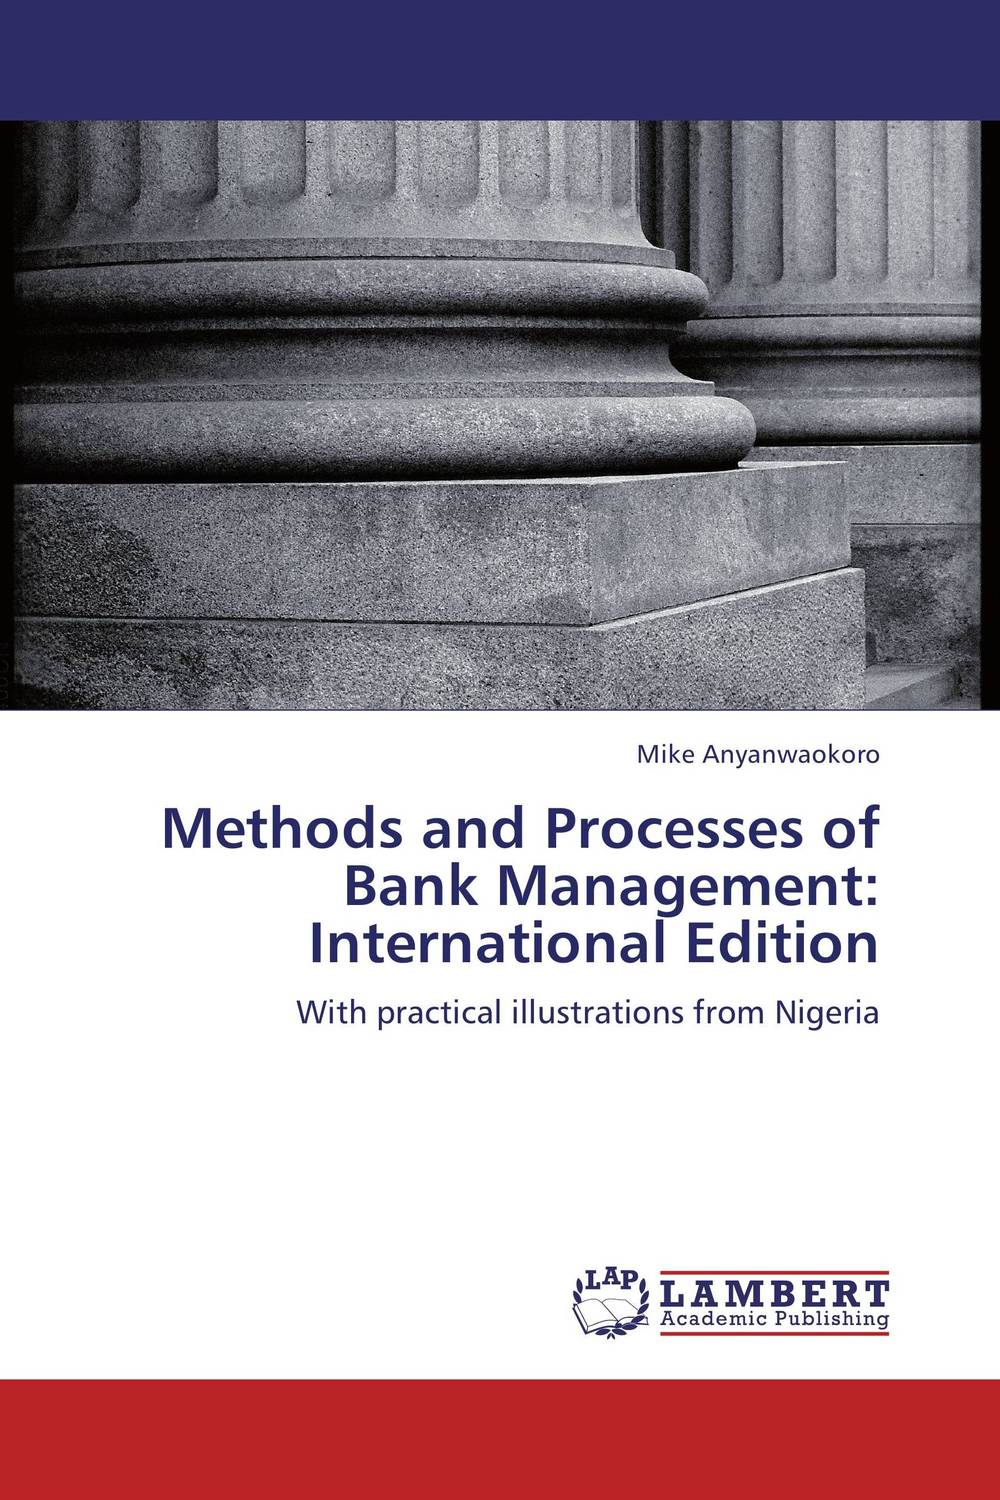 Methods and Processes of Bank Management: International Edition belousov a security features of banknotes and other documents methods of authentication manual денежные билеты бланки ценных бумаг и документов